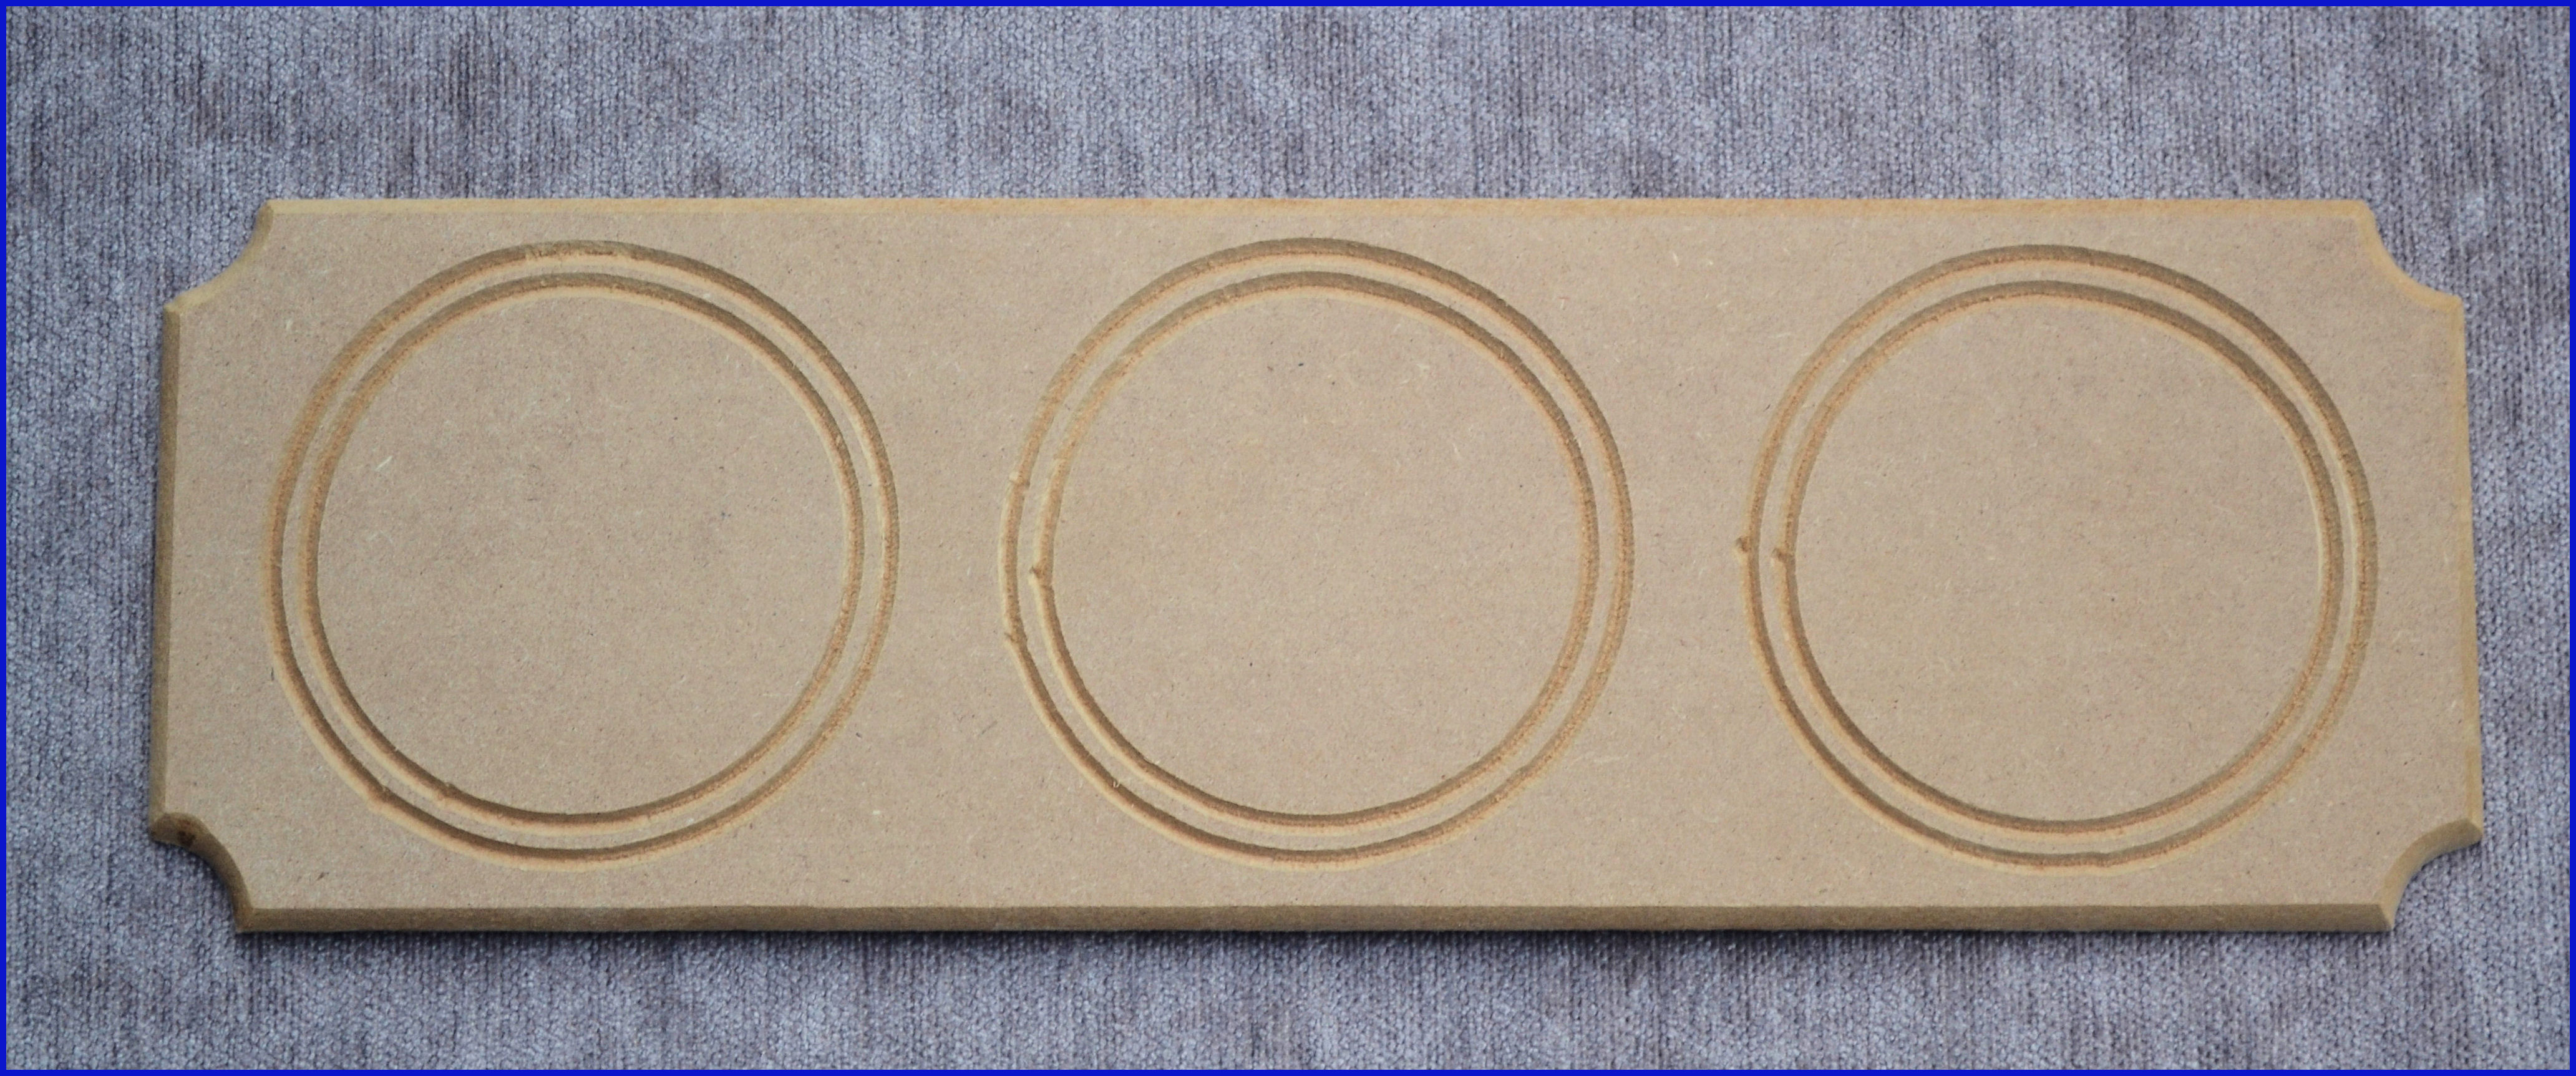 lw-plaque-with-3-circles-4213.jpg